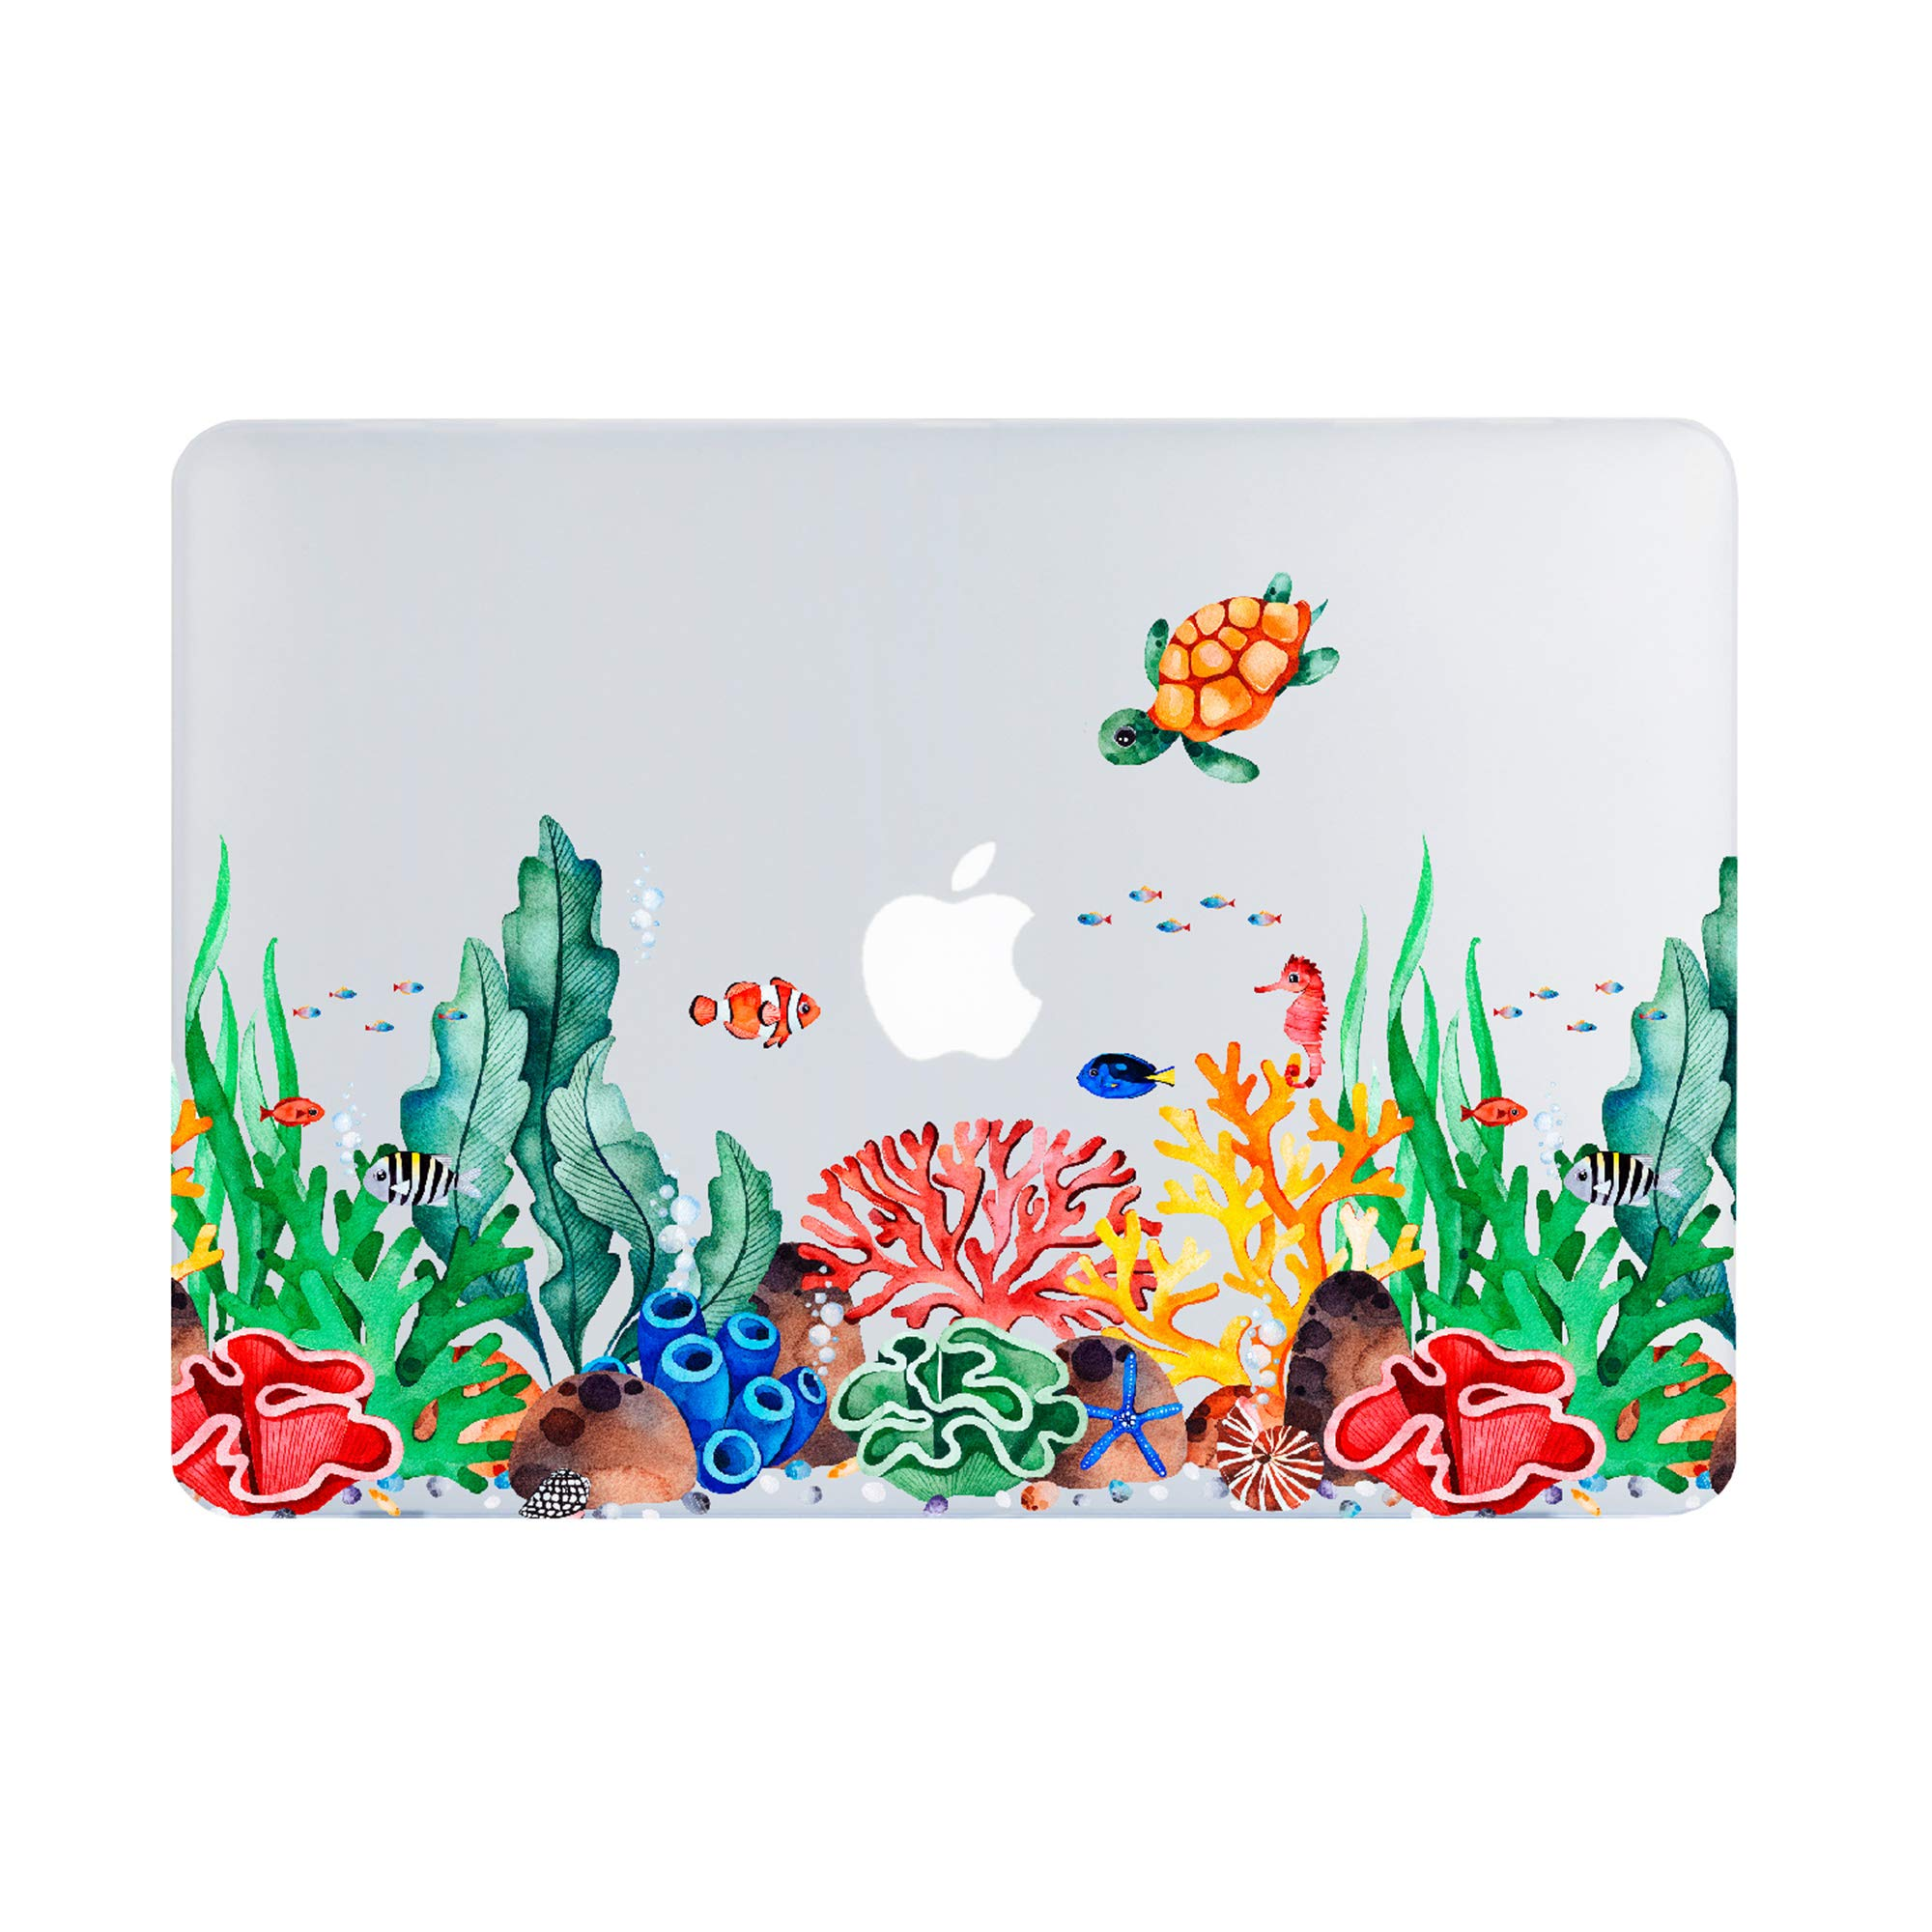 MacBook Air 13 Inch Case 2019 2018 Release A1932, Turtle Undersea World Clear Case,Cute Animal Soft Touch Hard Shell Case Retina Display Fits Touch ID by Lapac